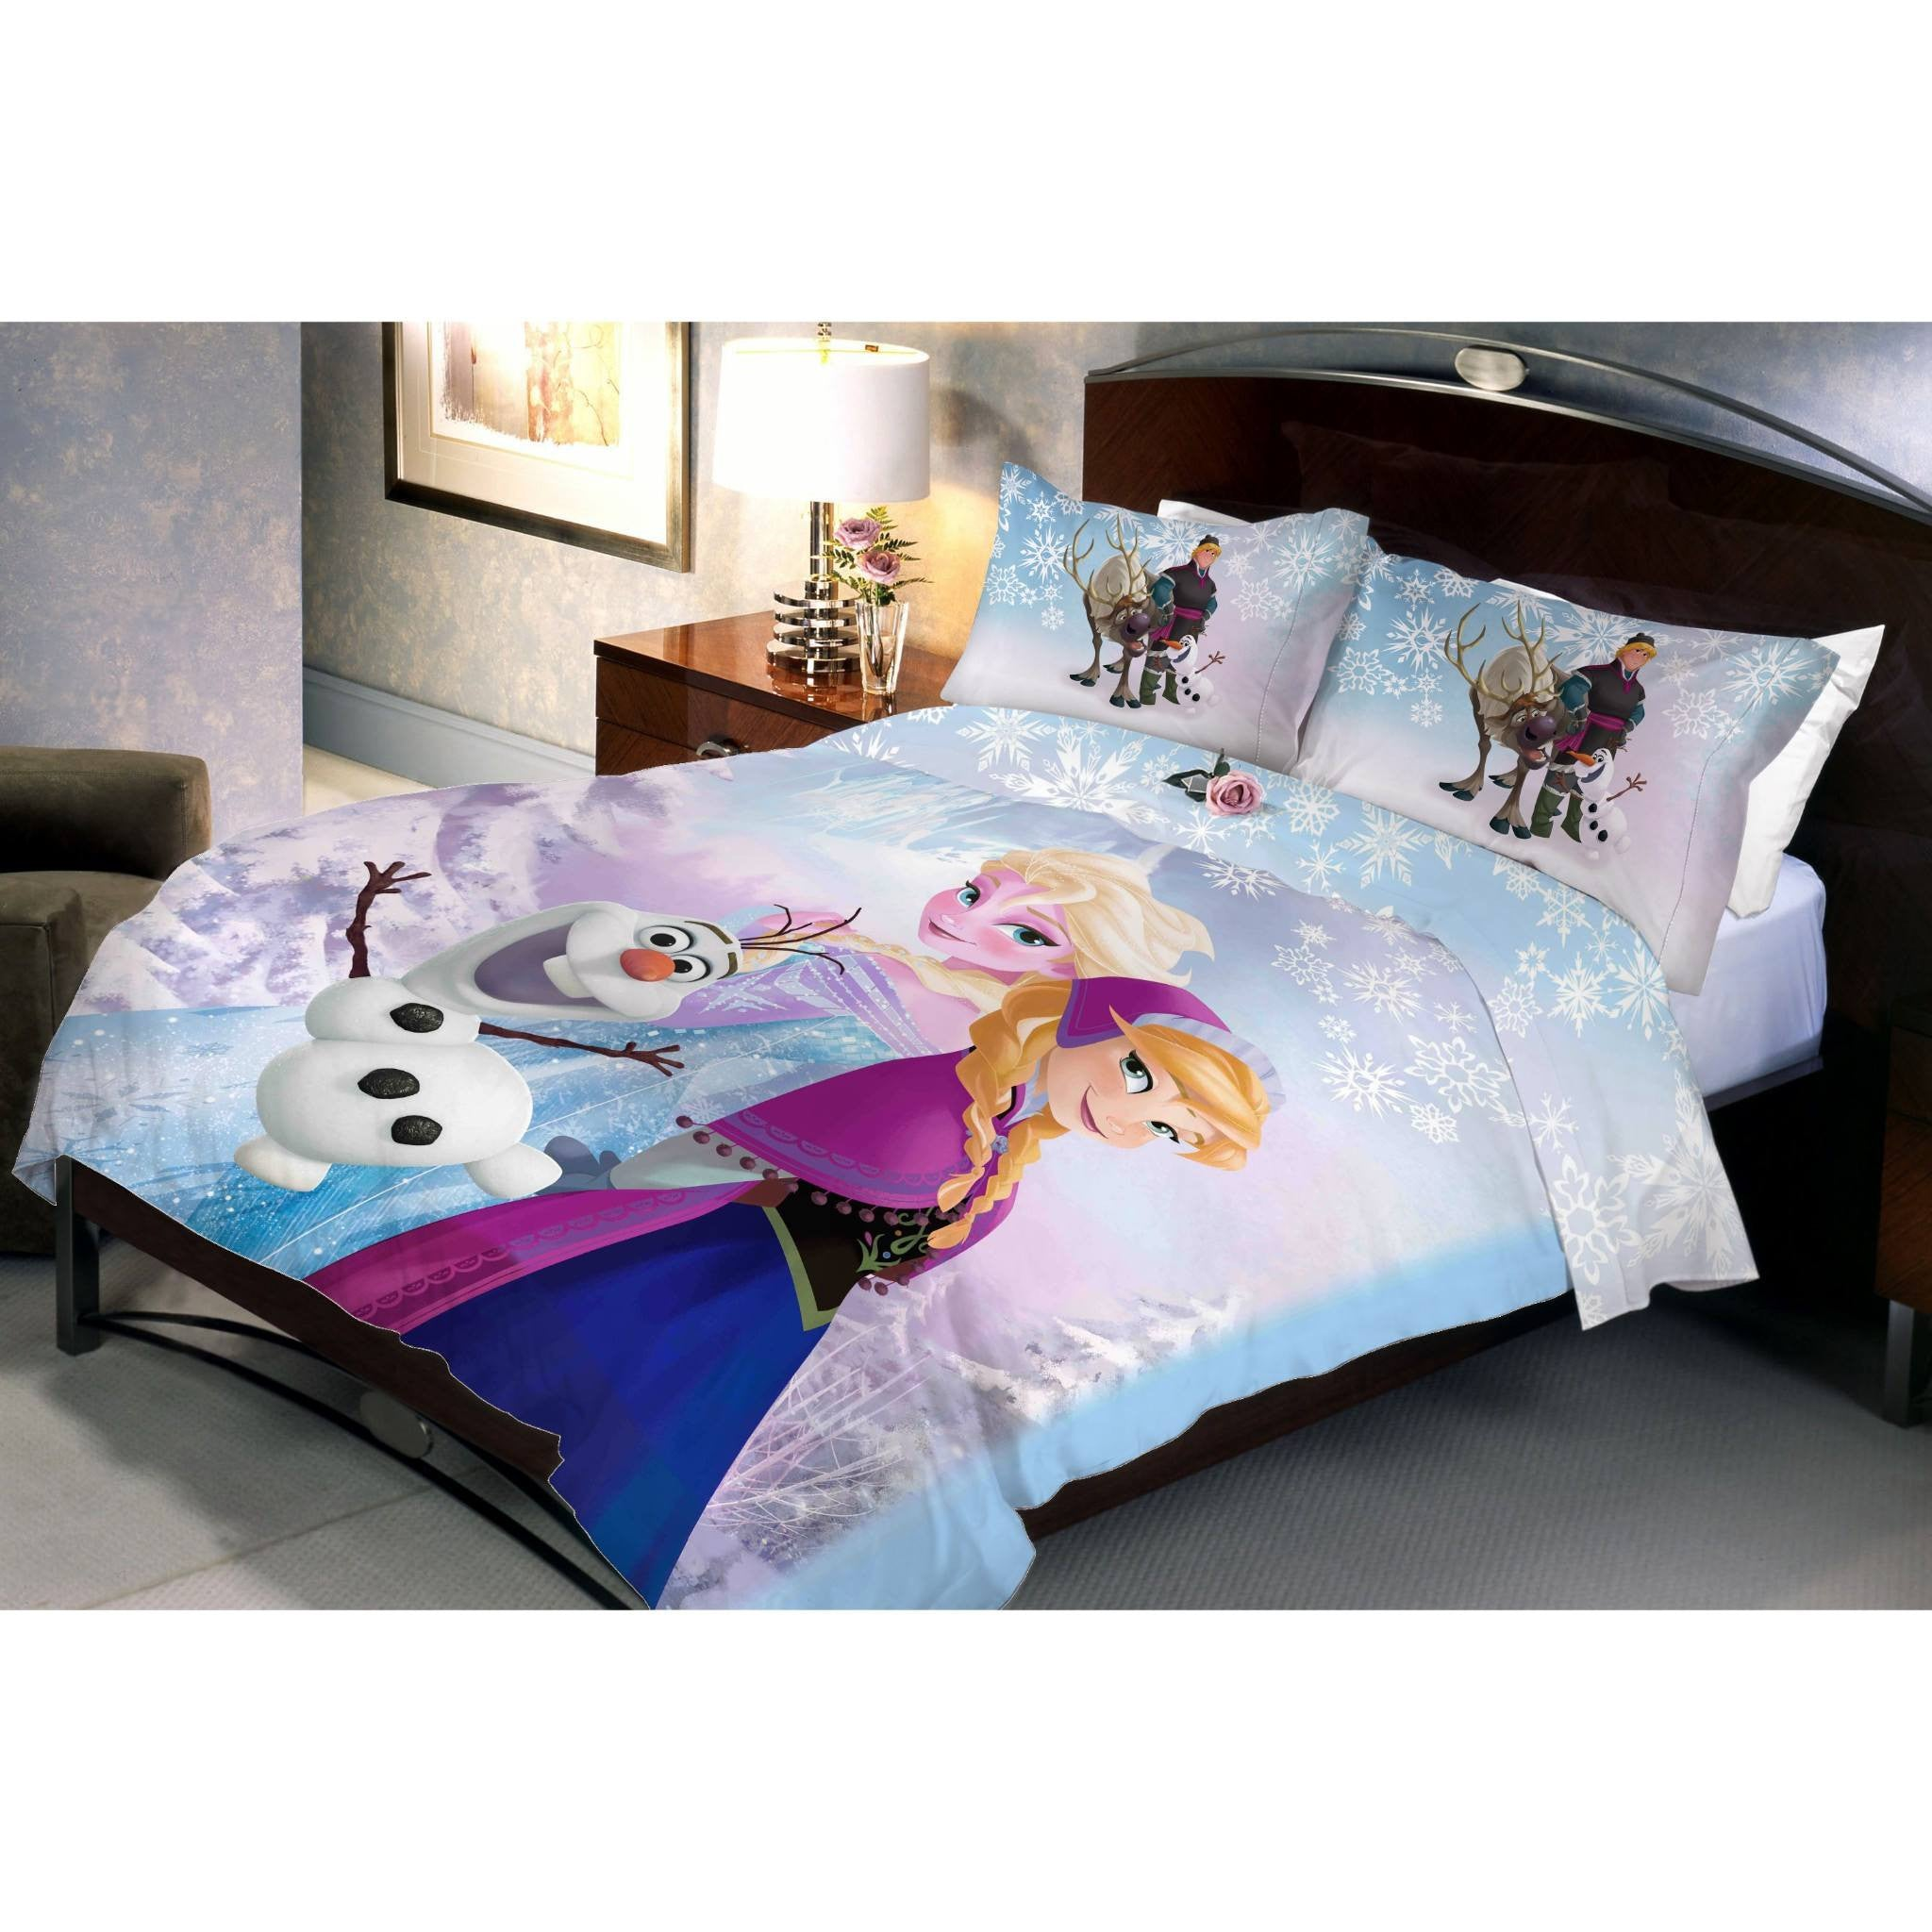 Superieur ... Frozen Family Double Bed Sheet And Pillow Covers   Über Urban Bedsheet